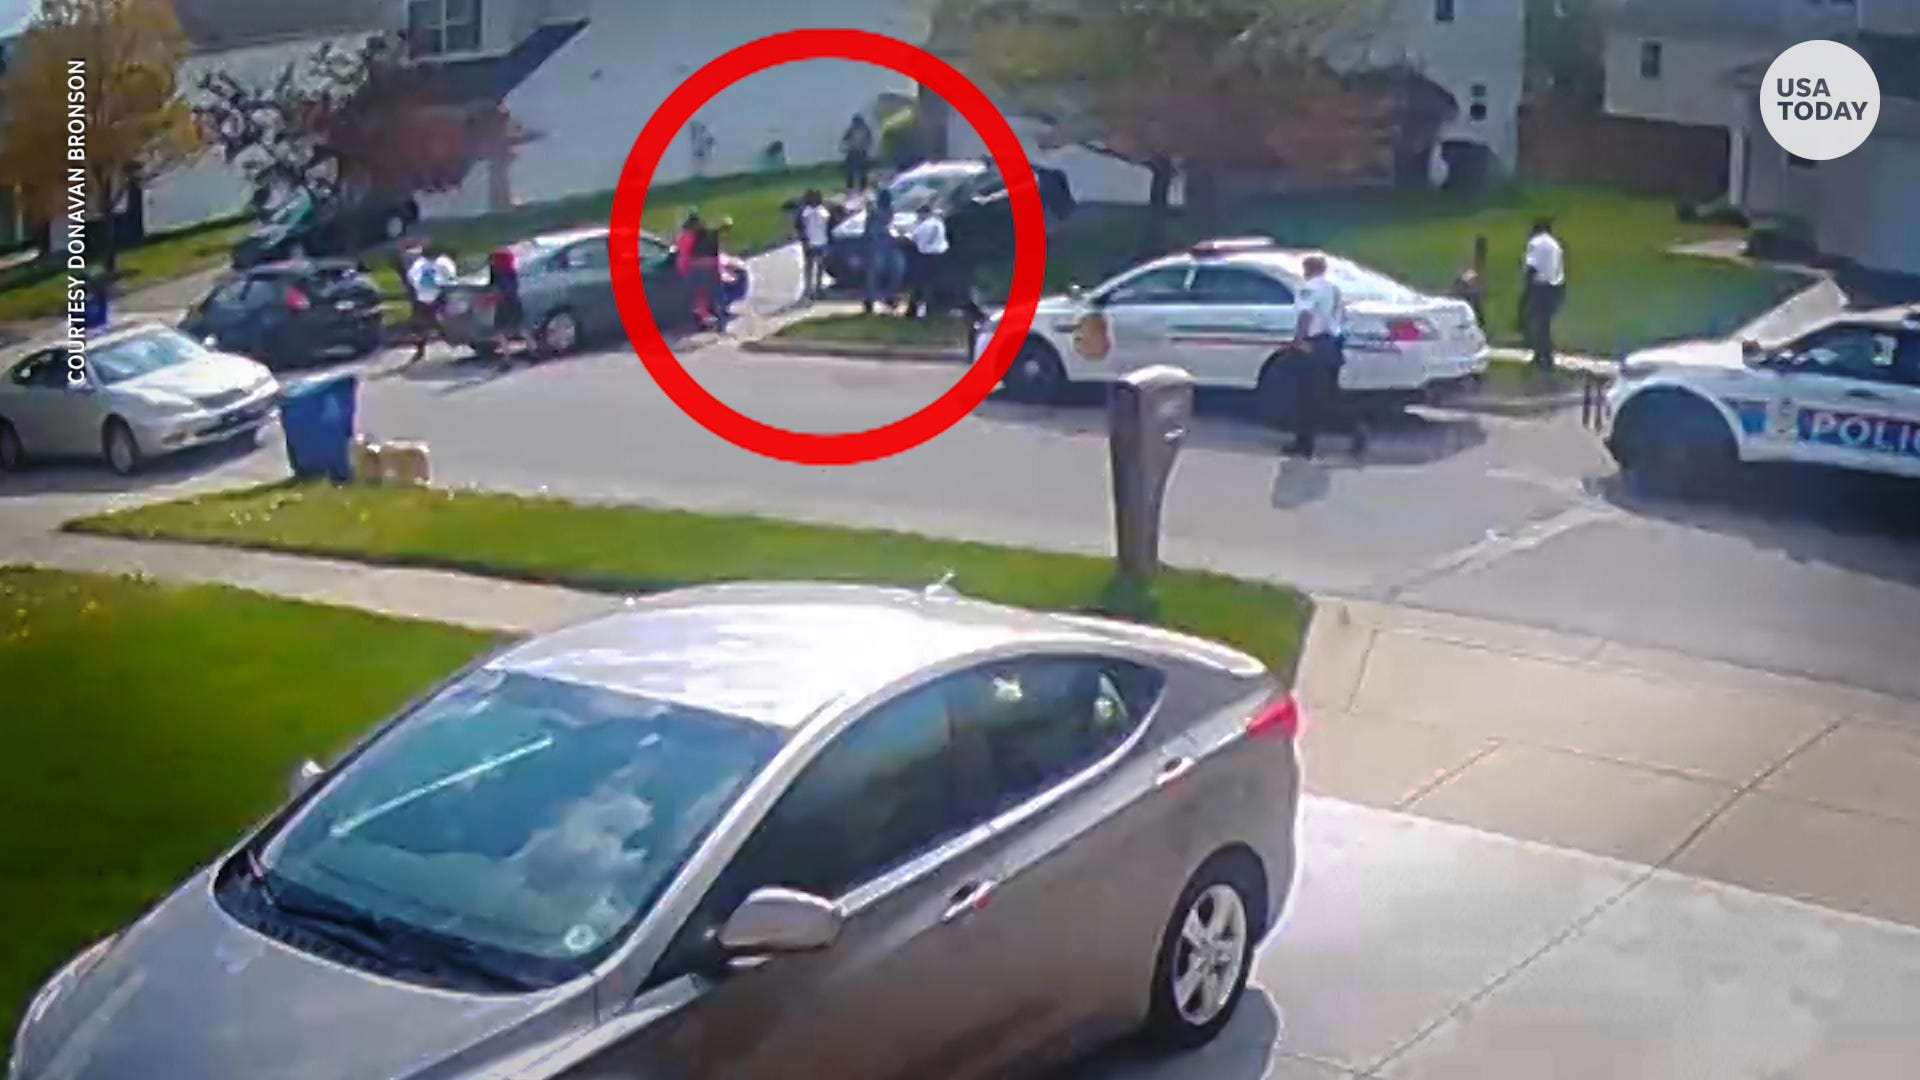 Security footage shows police shoot and kill Black teenager after stabbing attempt